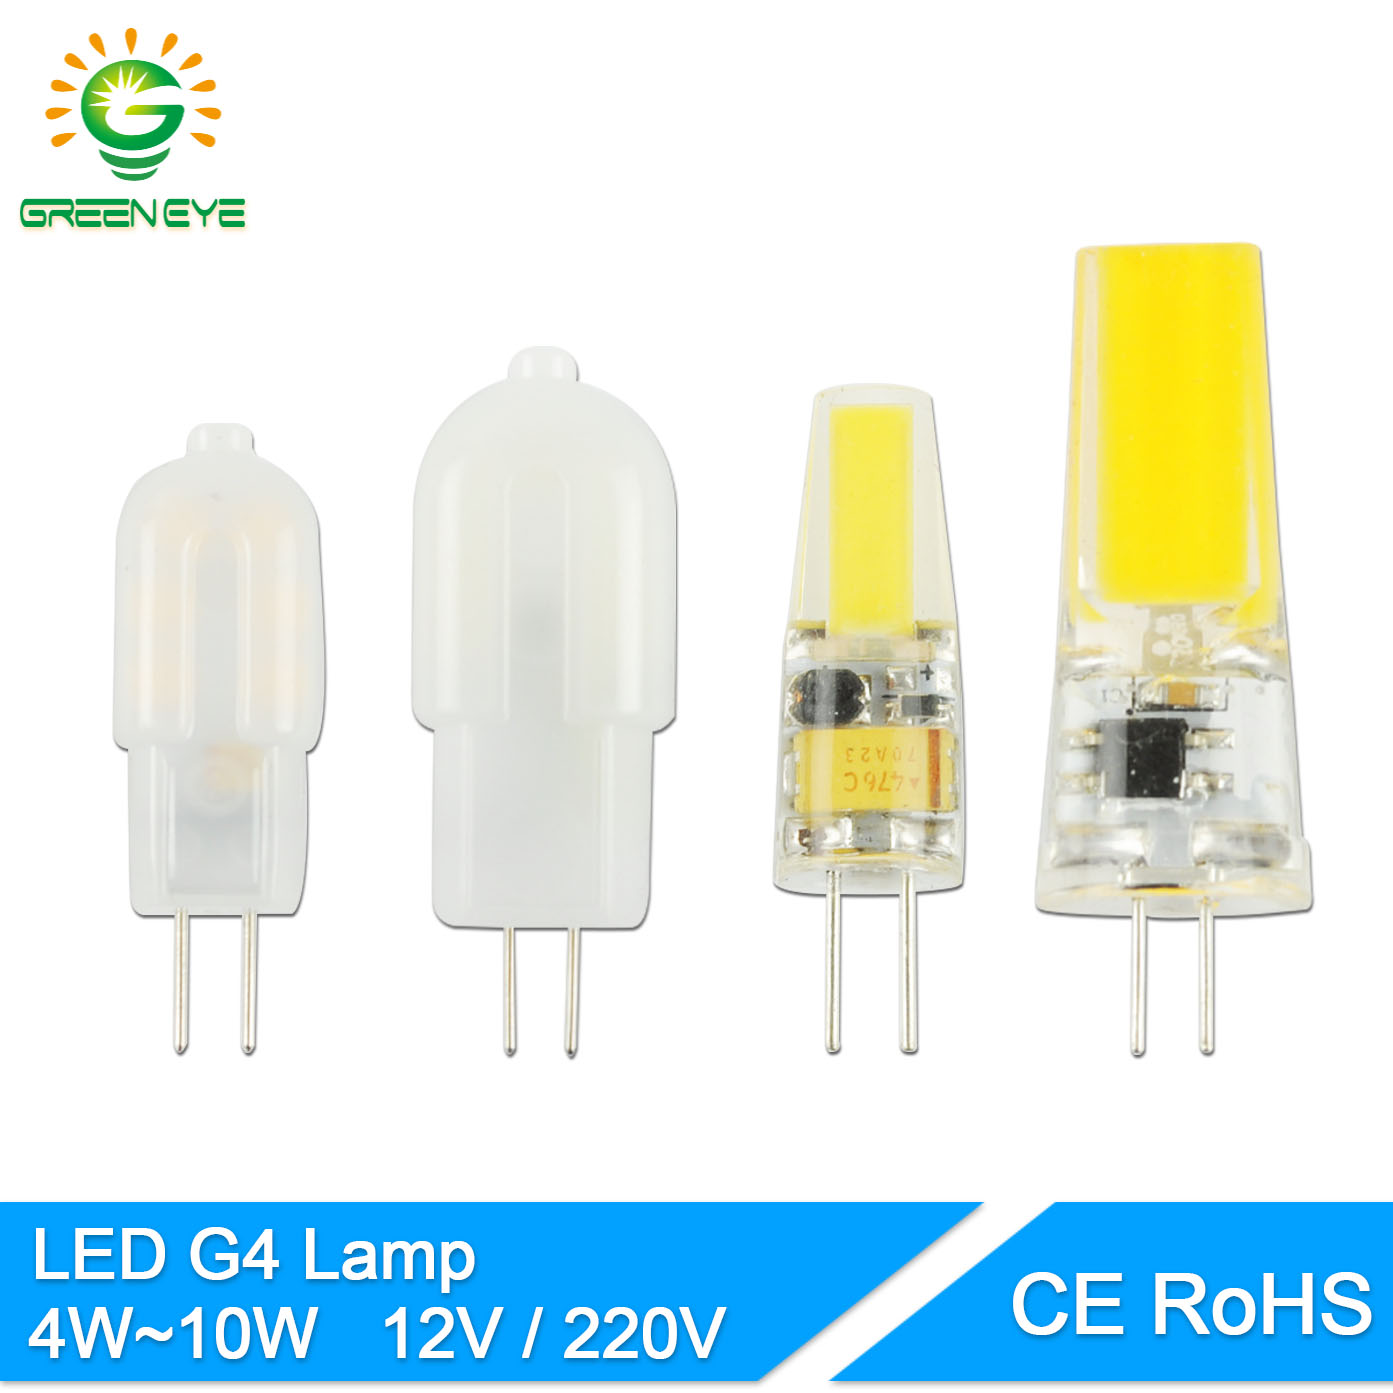 greeneye g4 dimmable ac dc 12v 220v mini led g4 lamp cob led bulb g4 4w 6w 10w replace halogen. Black Bedroom Furniture Sets. Home Design Ideas